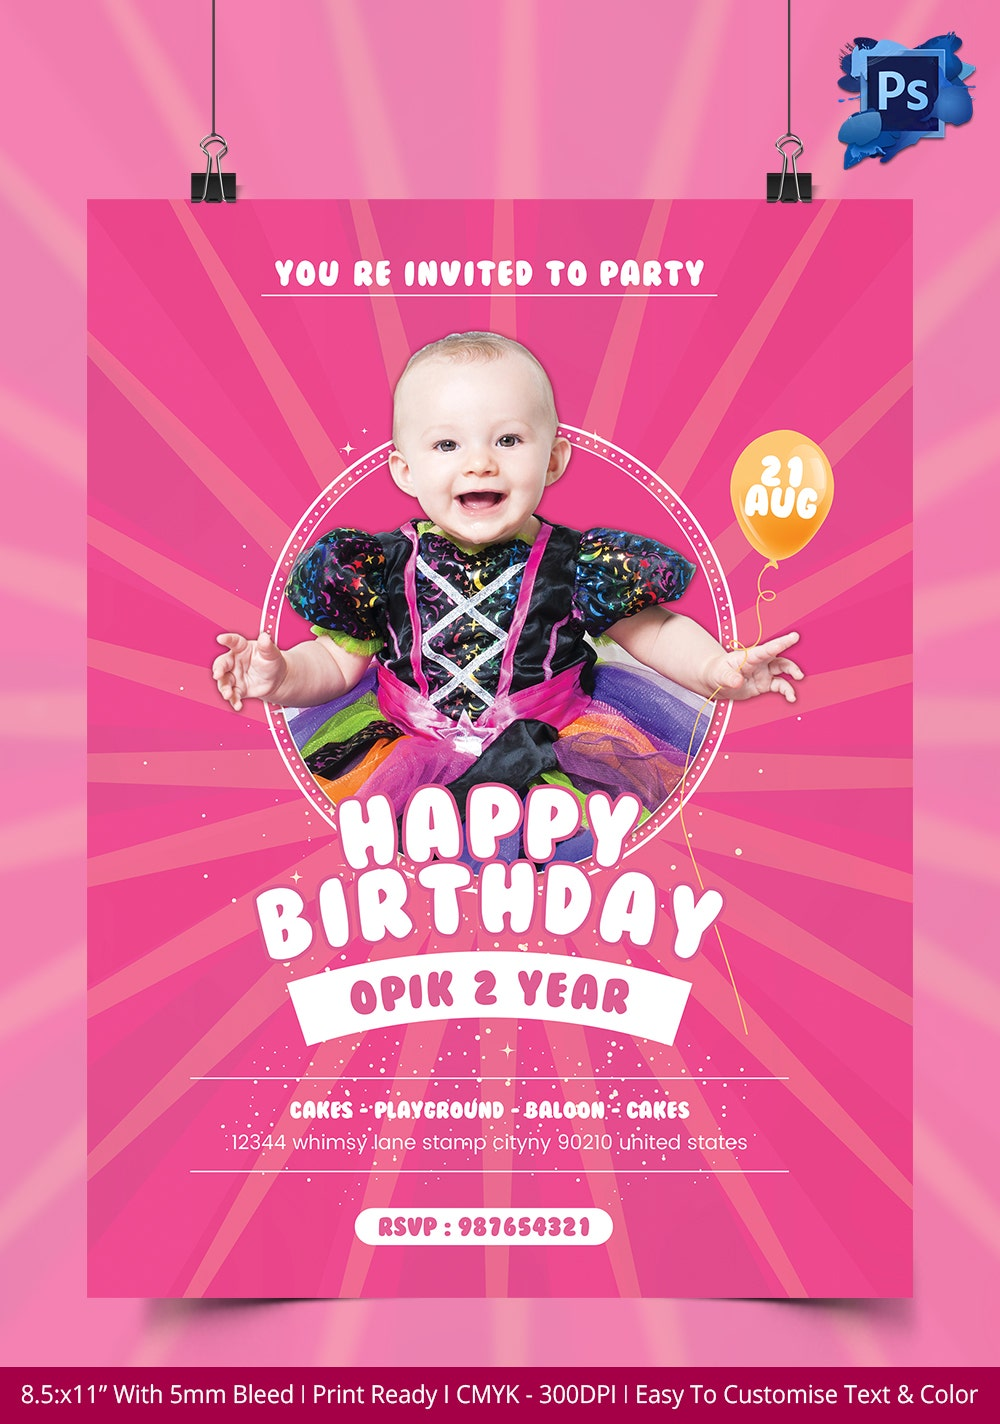 Birthday-Party-Invitation-Flyer-